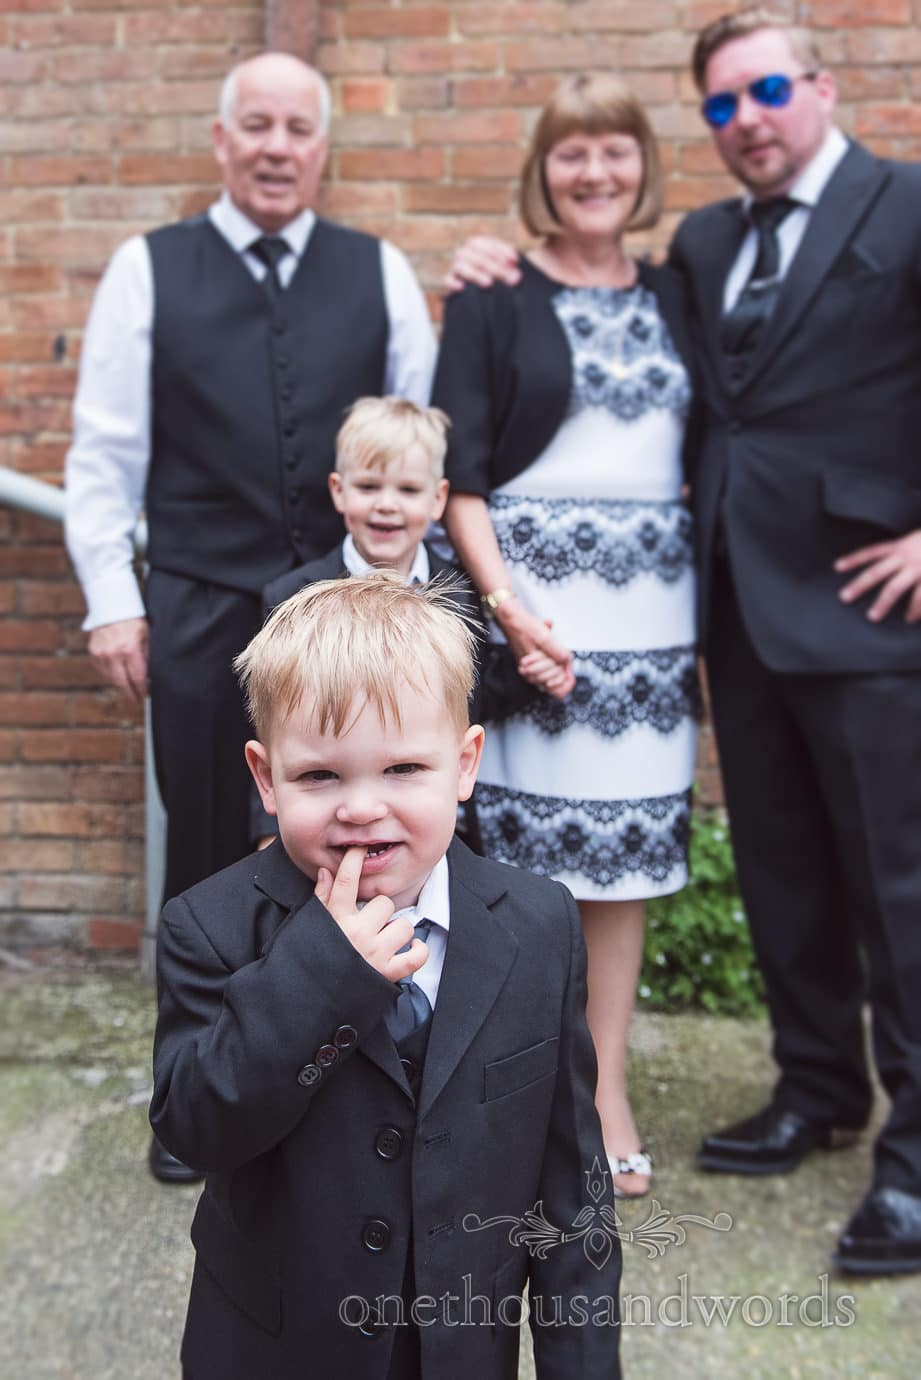 Groom's son takes over family wedding photograph on wedding morning in Dorset